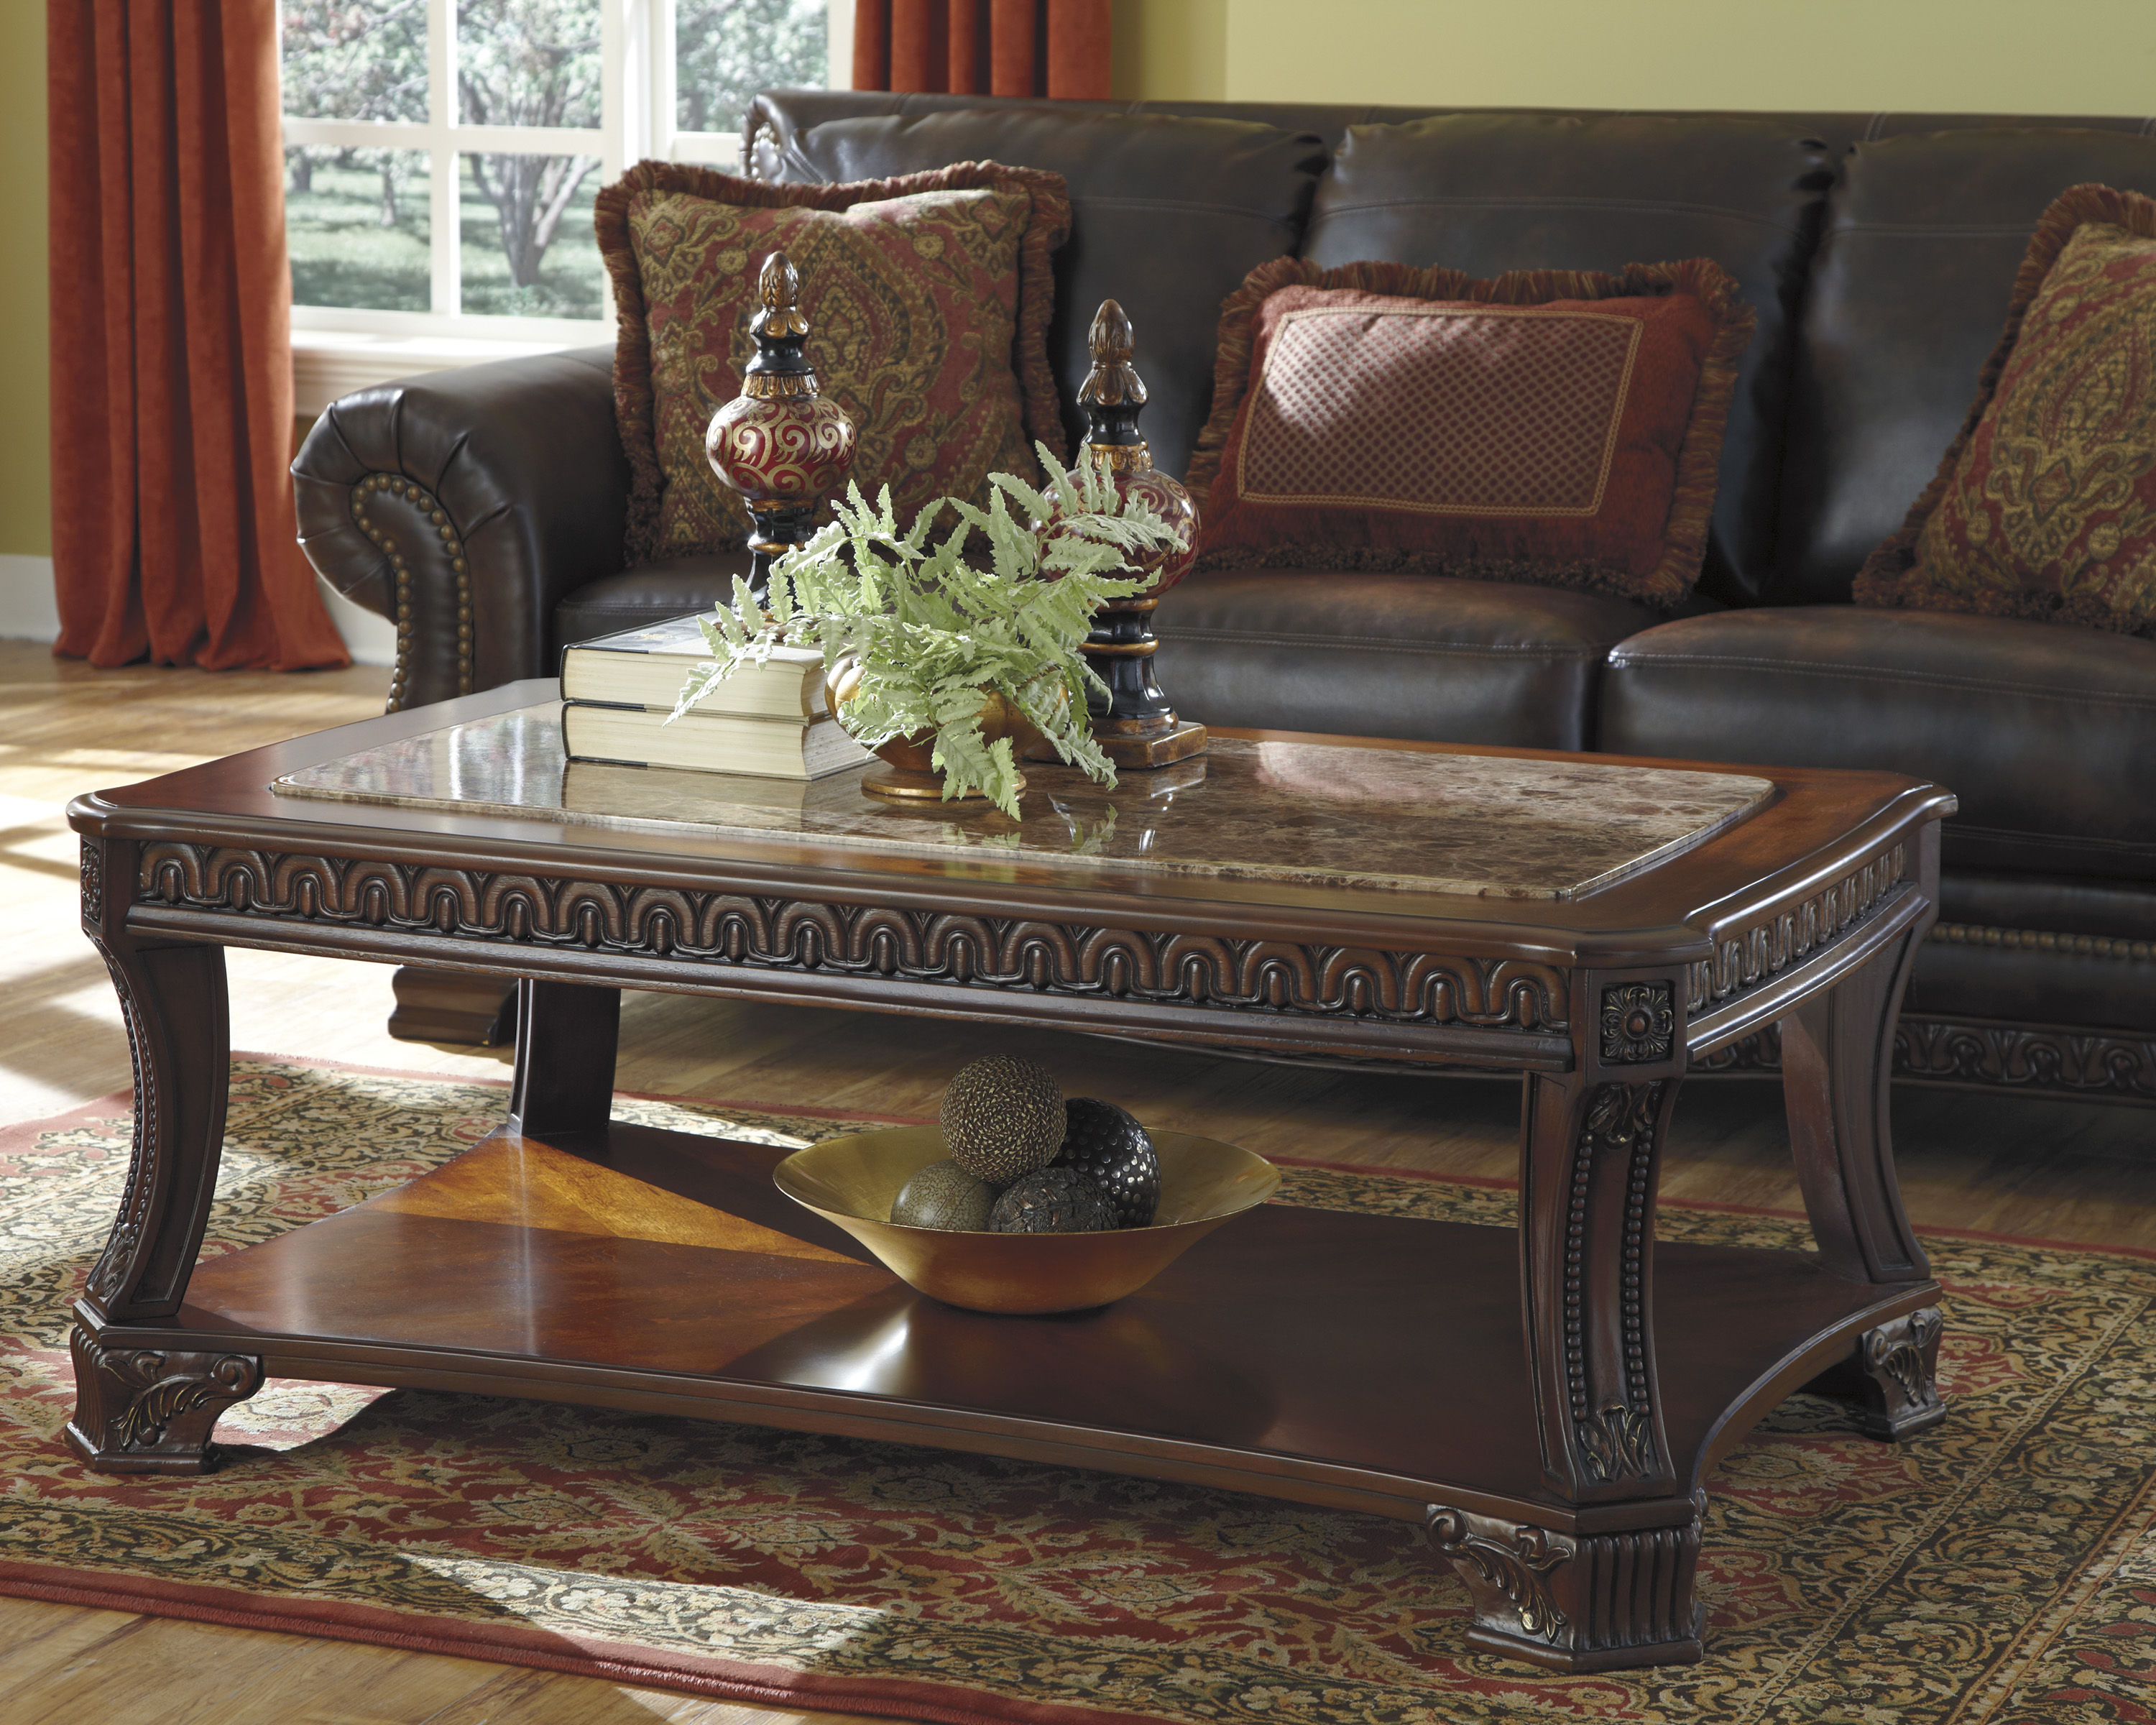 Ashley Furniture Ledelle 3pc Coffee Table Set The Classy Home